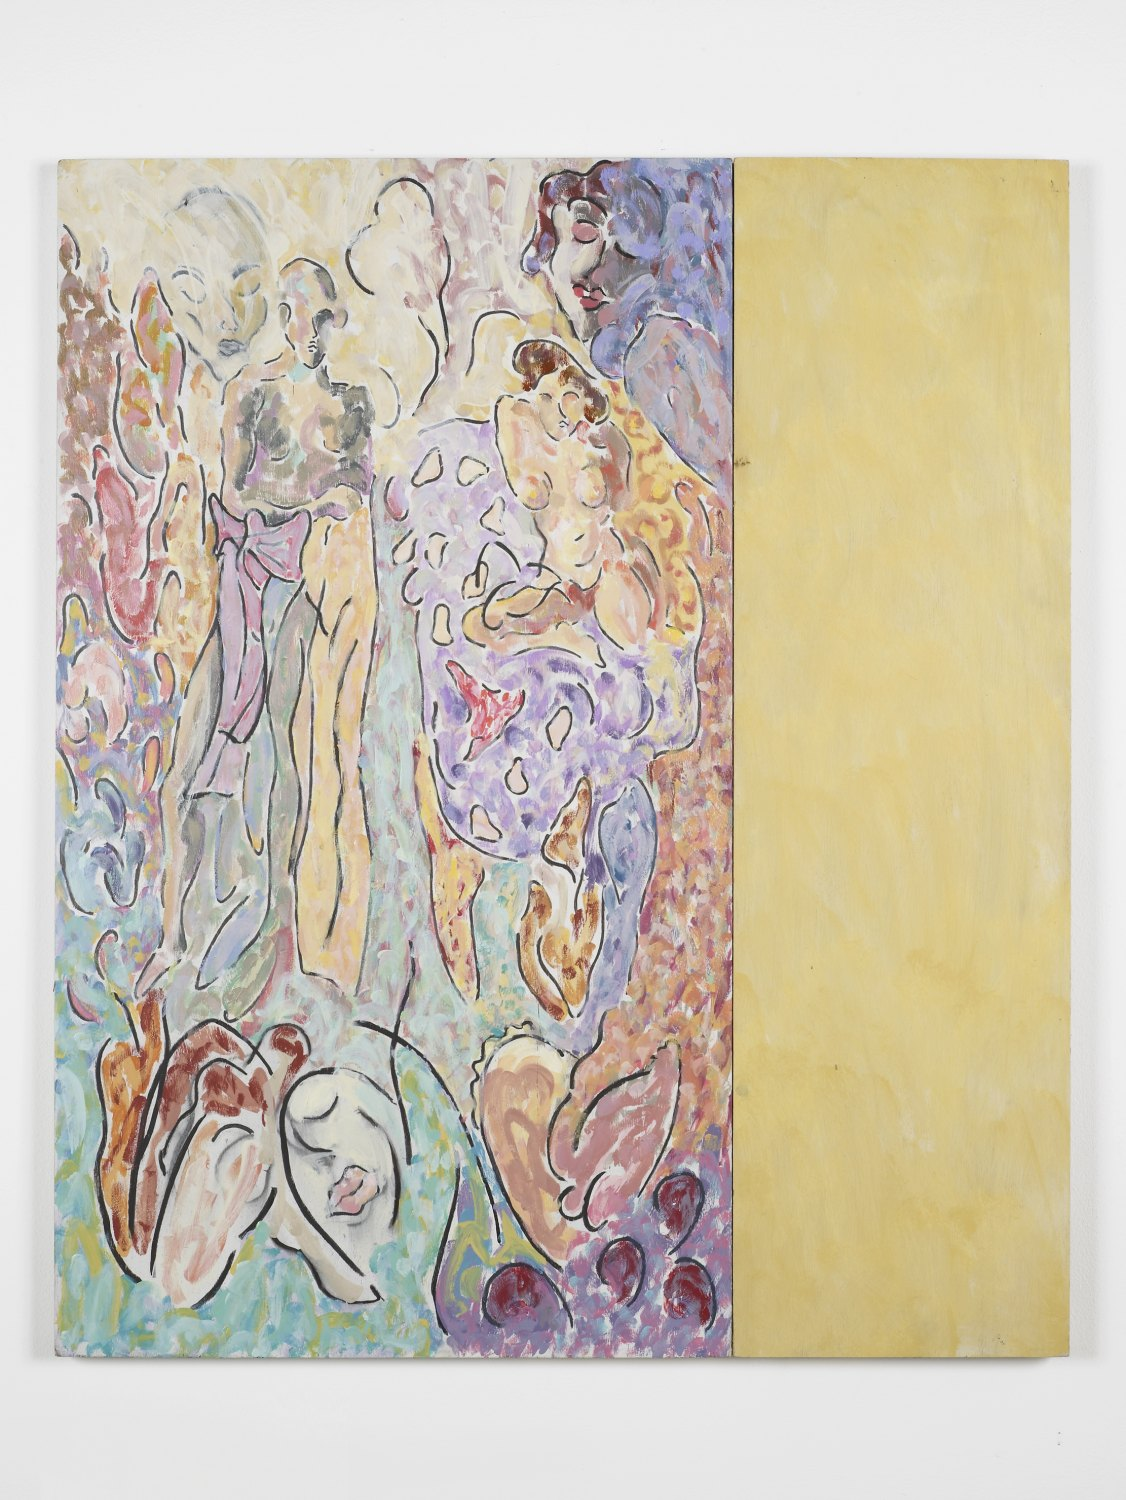 Marc Camille Chaimowicz After PB. (1), 1985 - 1990 Oil and charcoal on board and canvas, 92 × 110 cm